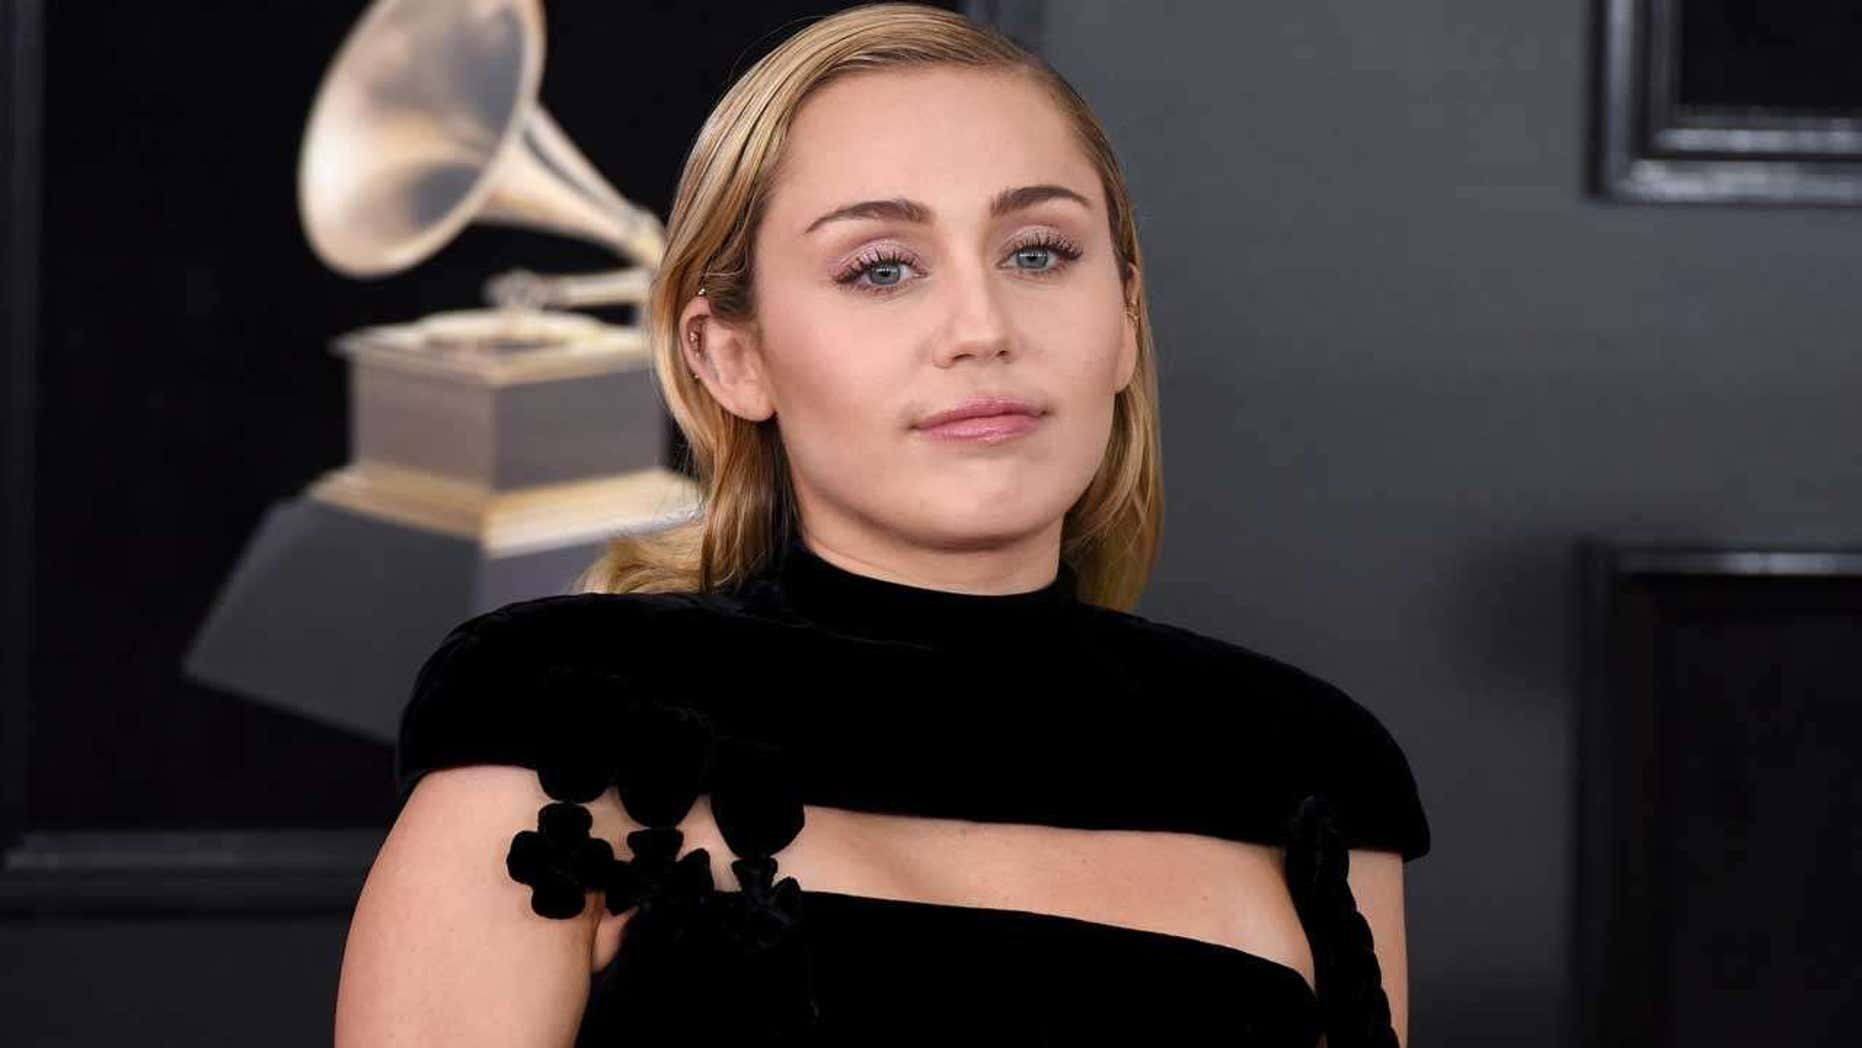 Miley Cyrus is gearing up to release new music, and from the singer's Twitter account on Monday, it looks like heartbreak will be the theme of her upcoming song.